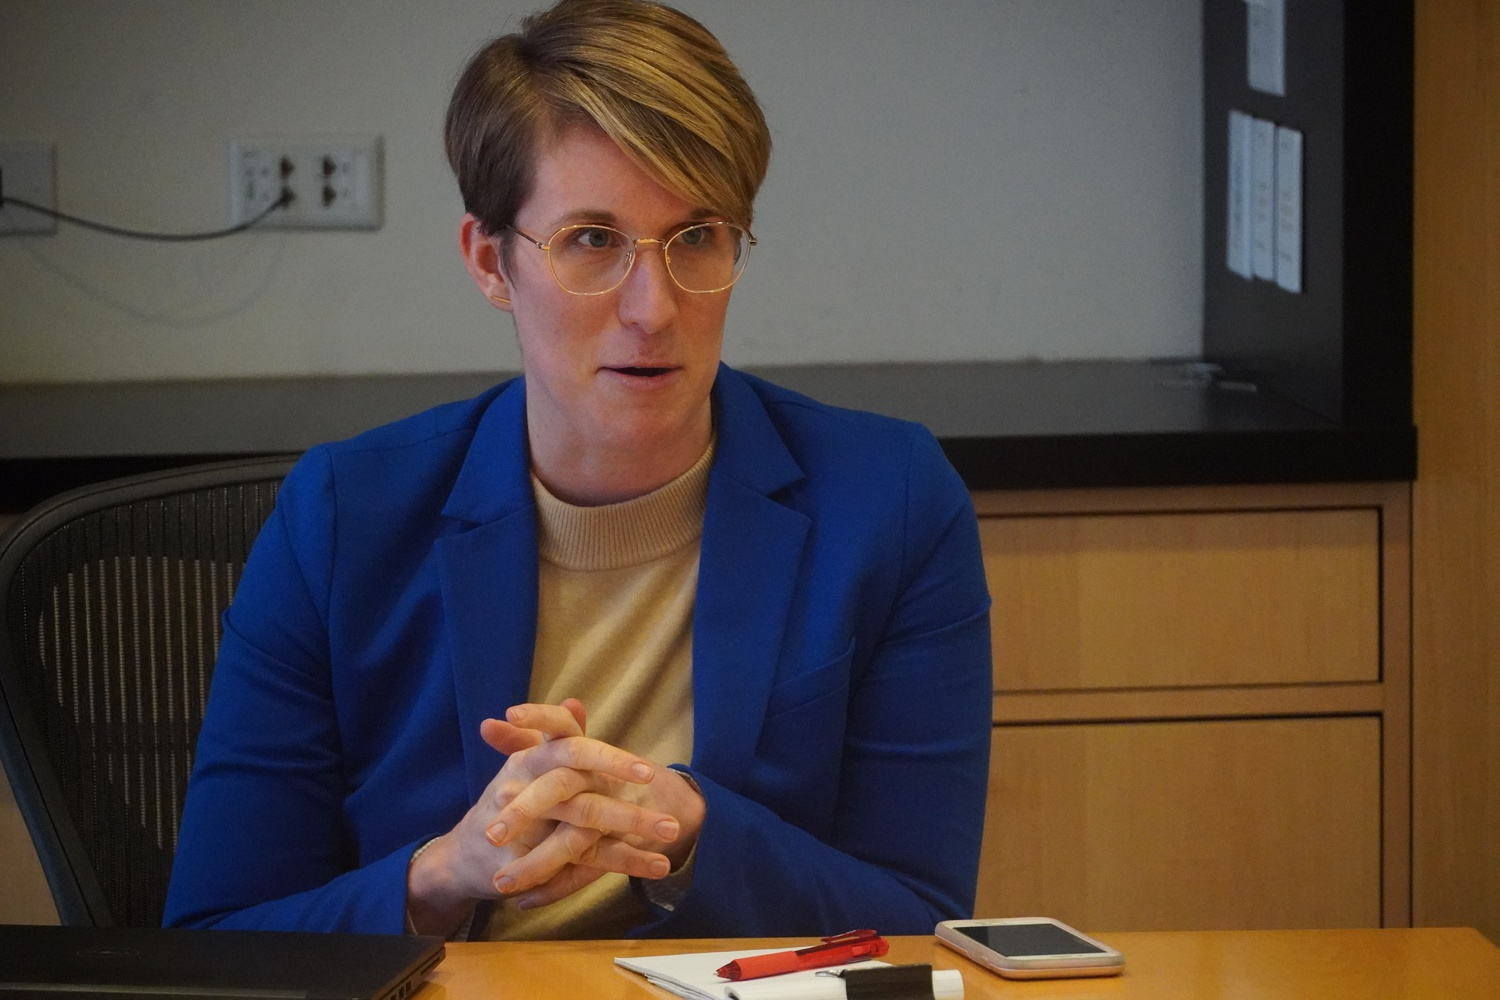 Erin Clark became the Title IX Coordinator for Harvard College in October. Previously, she held positions at Chicago Public Schools and Northwestern University.